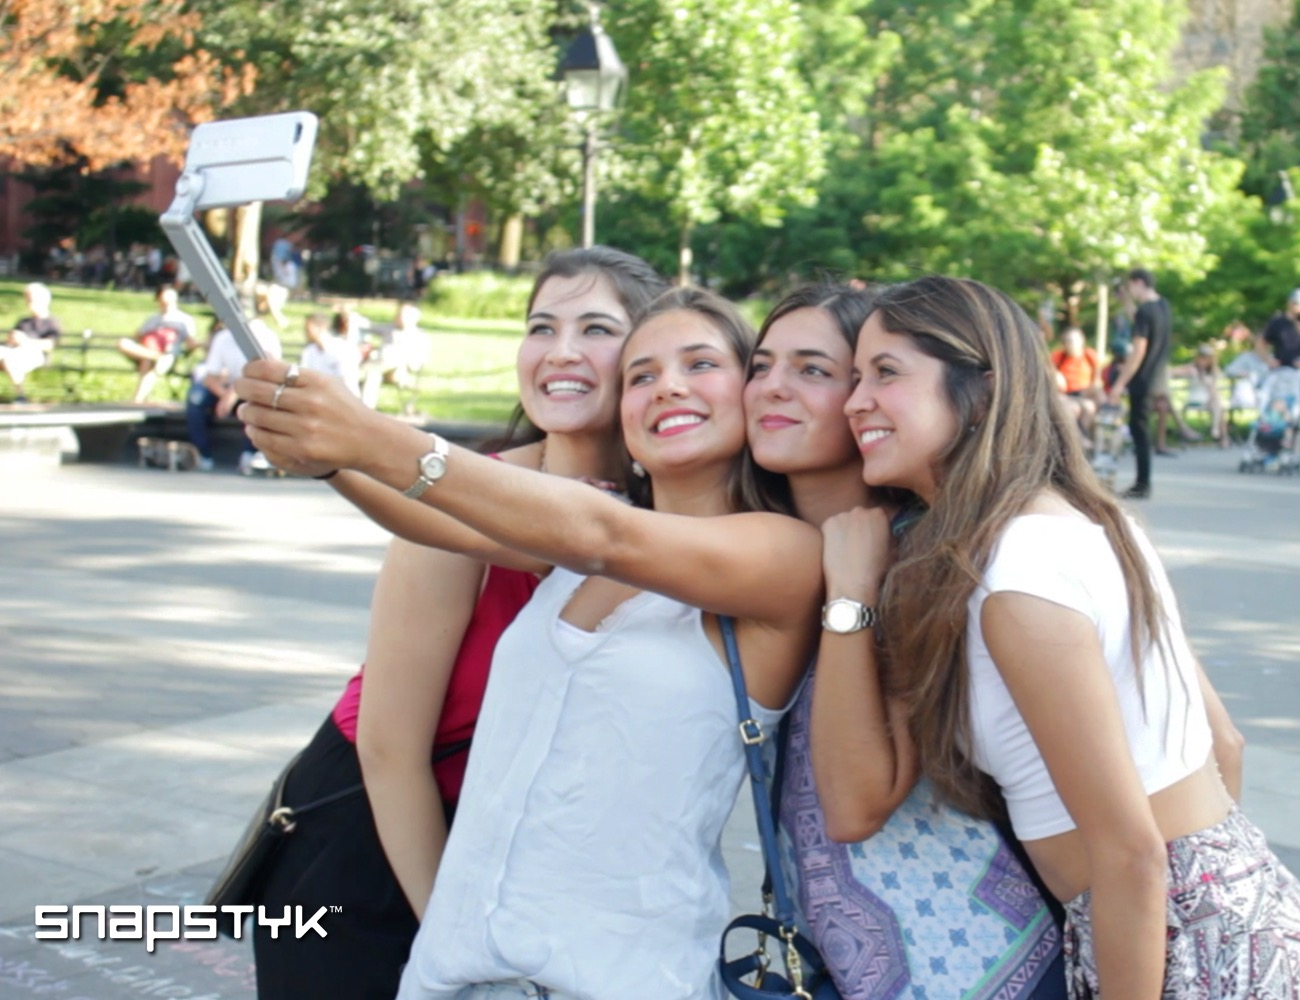 SNAPSTYK%3A+The+First+Cell+Phone+Case+And+Selfie+Stick+In+One